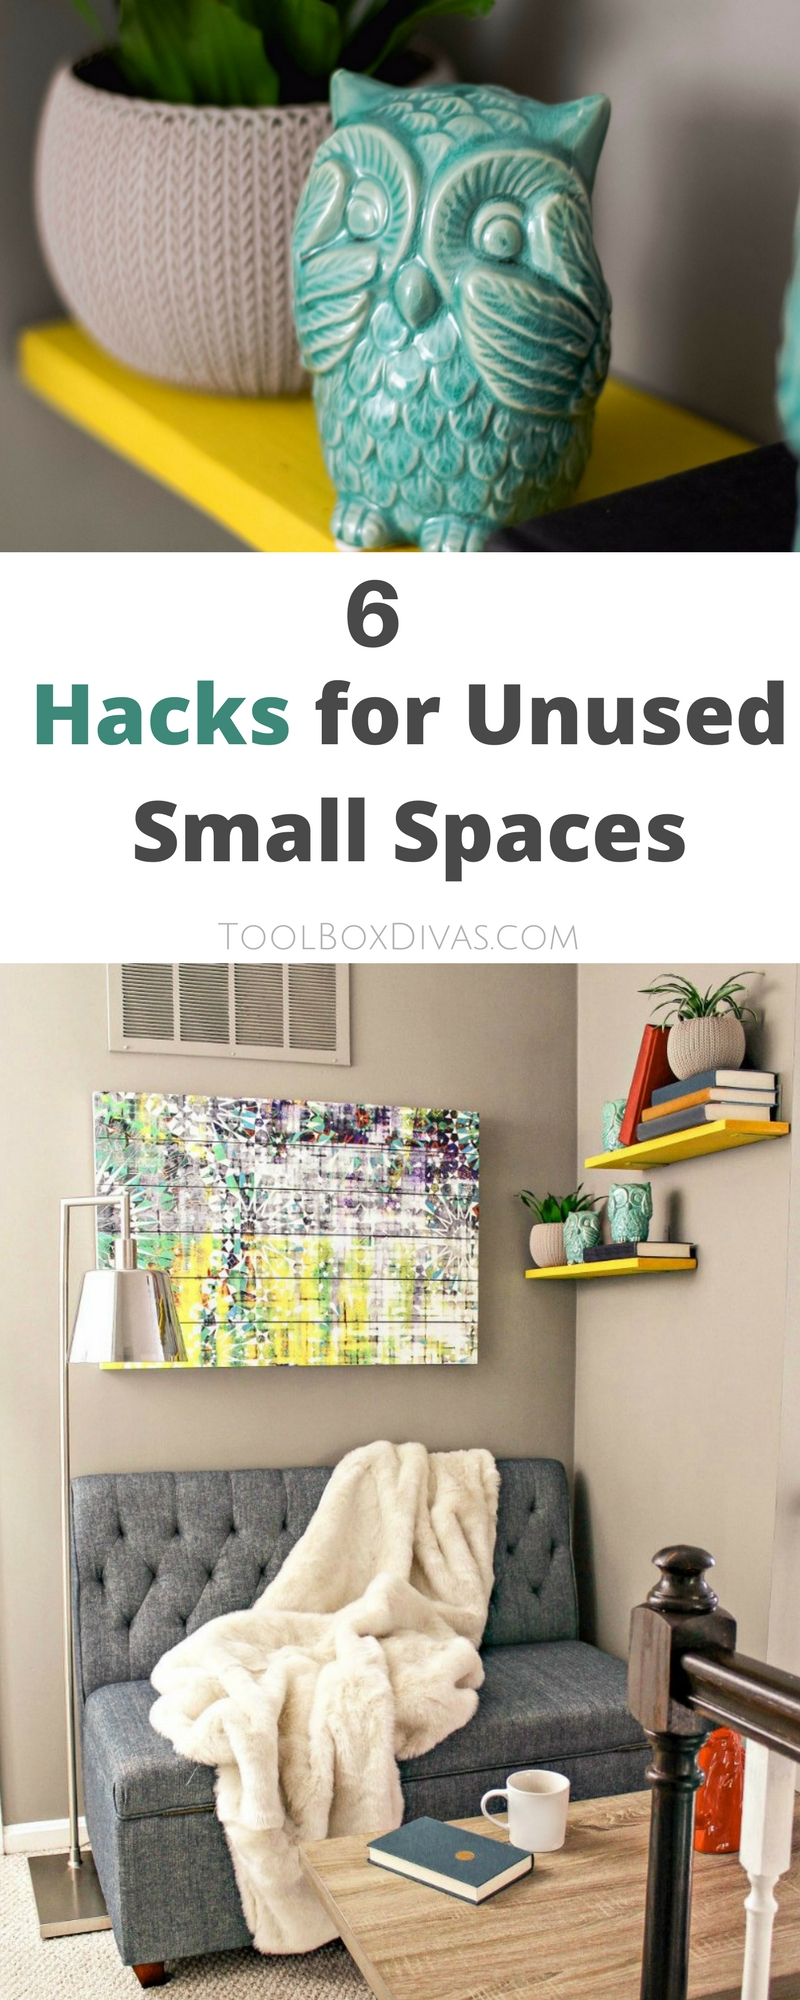 Give your home bonus rooms without drastically changing its footprint. Get the most out of your home with a little creativity. Transform that unused space in your home with these 6 steps. Create a reading nook. @Toolboxdivas @Homedepot  #Toolbox Divas #Homedepot #Sponsored #Furniture #interiordesign #Readingnook #smallspaces